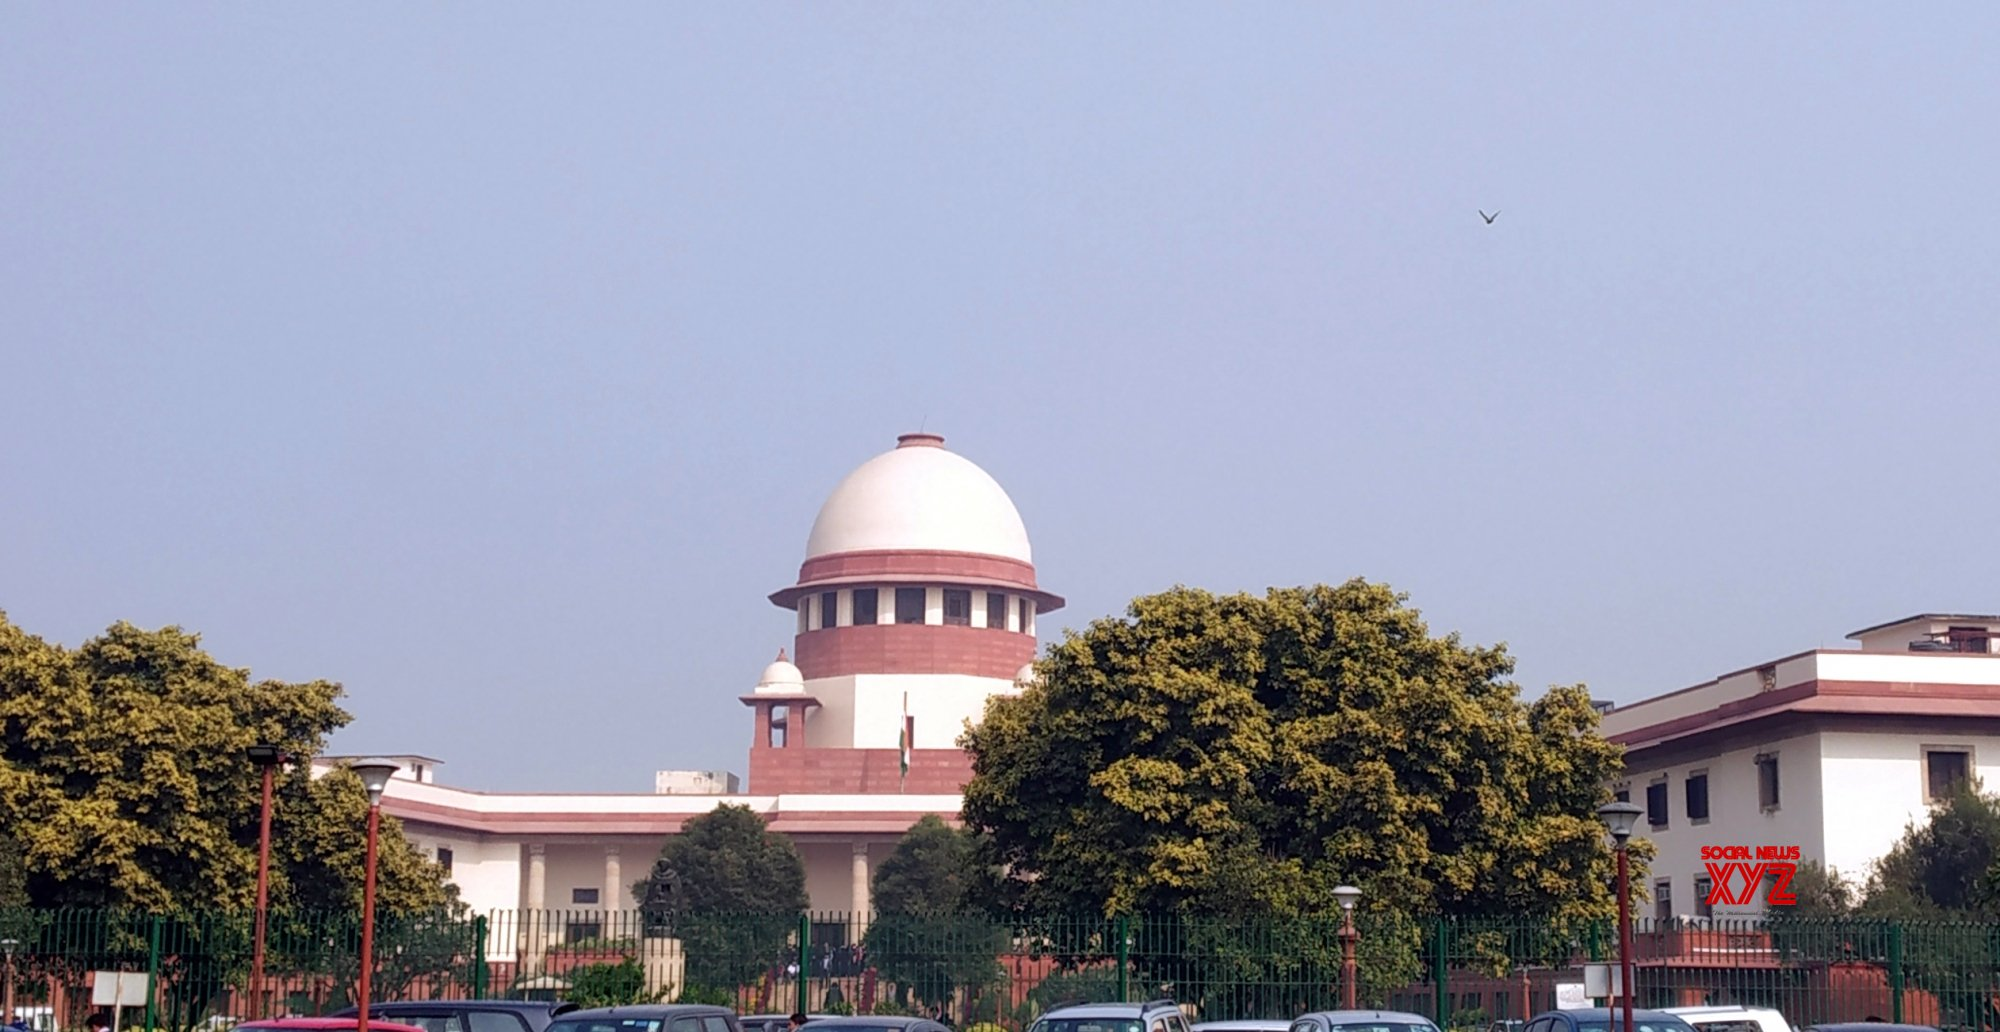 SC decides to fast-track hearing of criminal appeals in death penalty cases